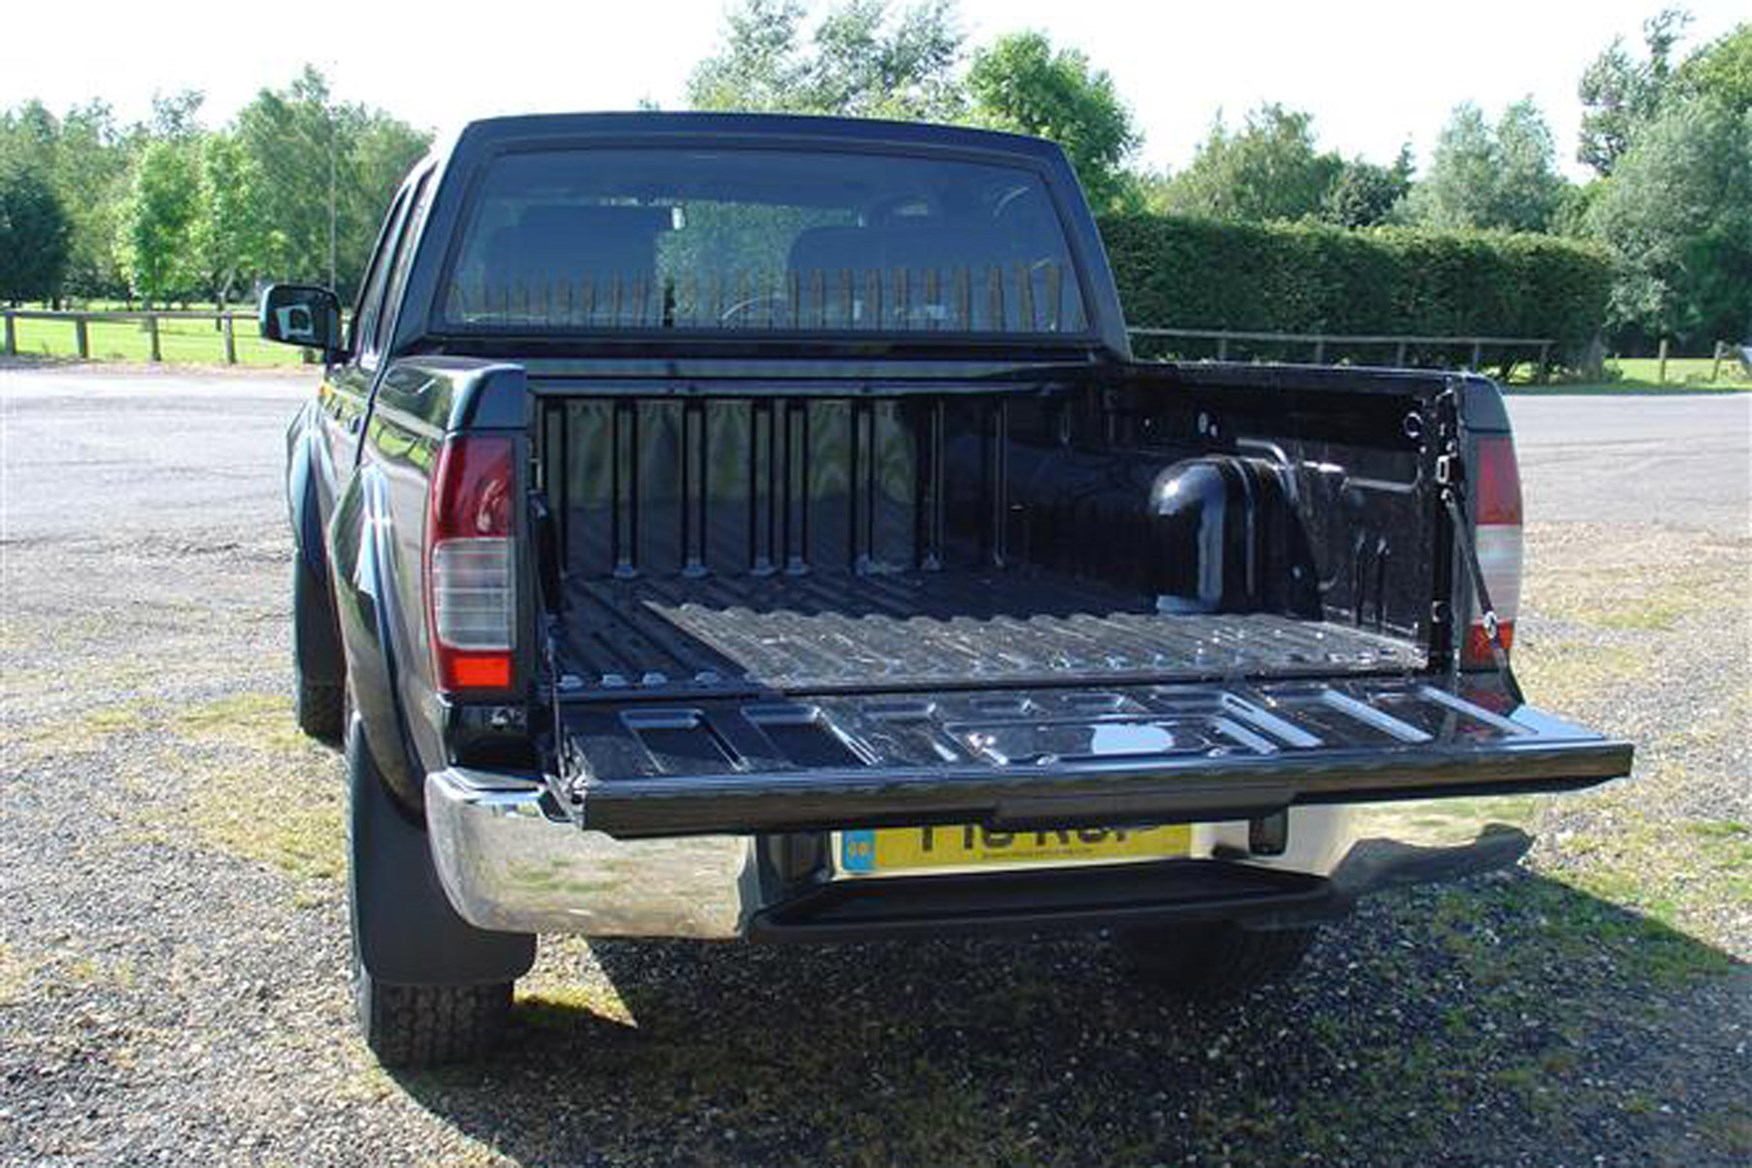 Nissan Navara 2001-2005 review on Parkers Vans - load area access